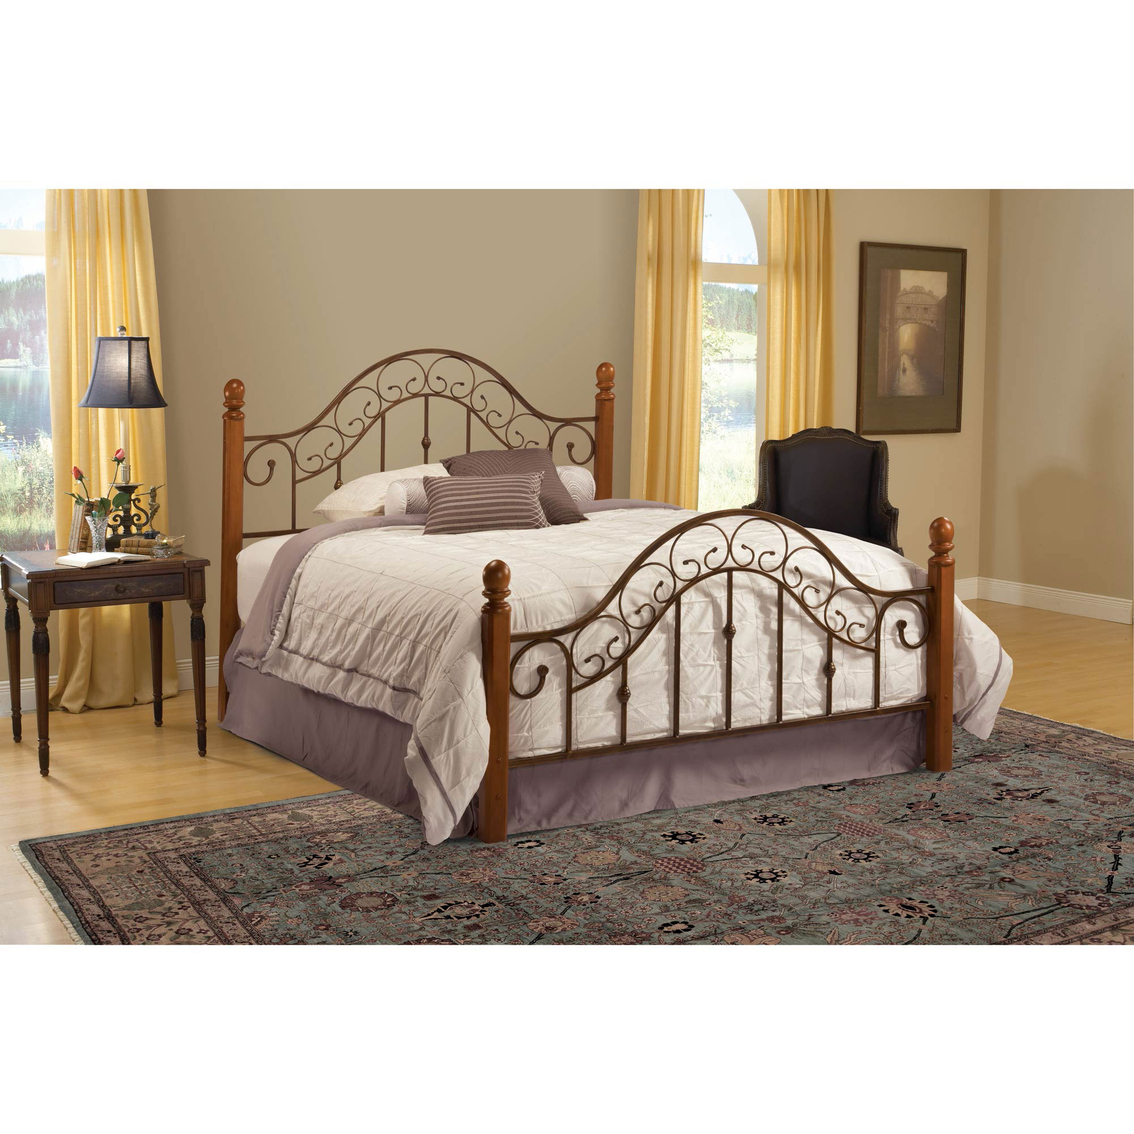 Bedroom Furniture Stores San Francisco: Hillsdale San Marcos Headboard And Footboard